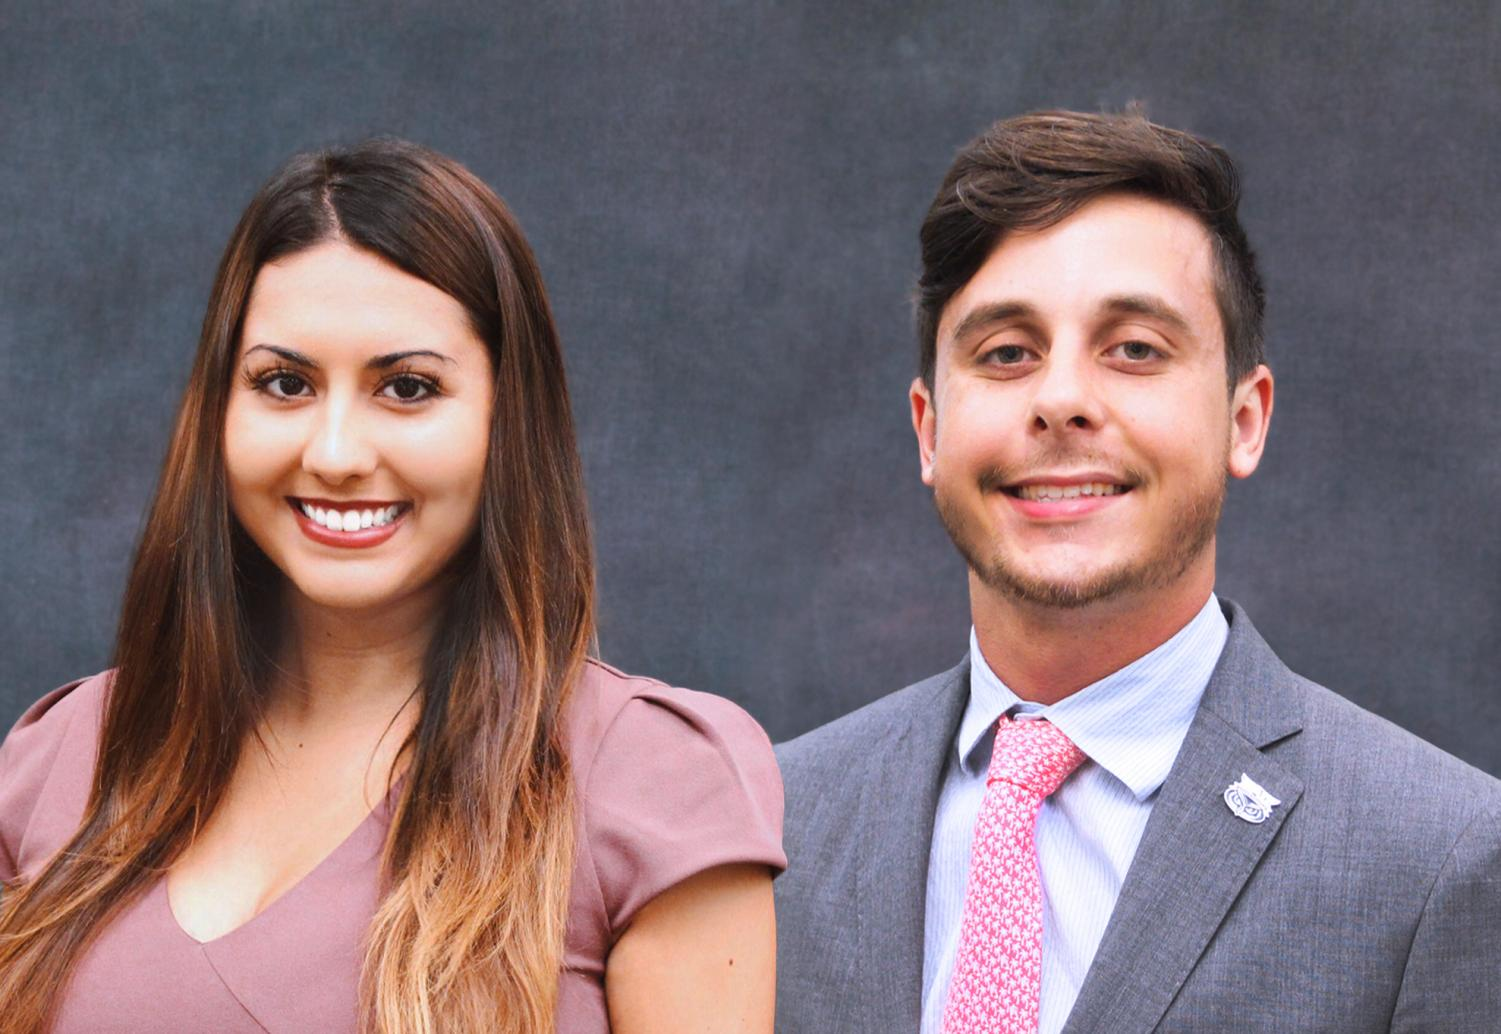 Student body Vice President Celine Persaud and President Kevin Buchanan.